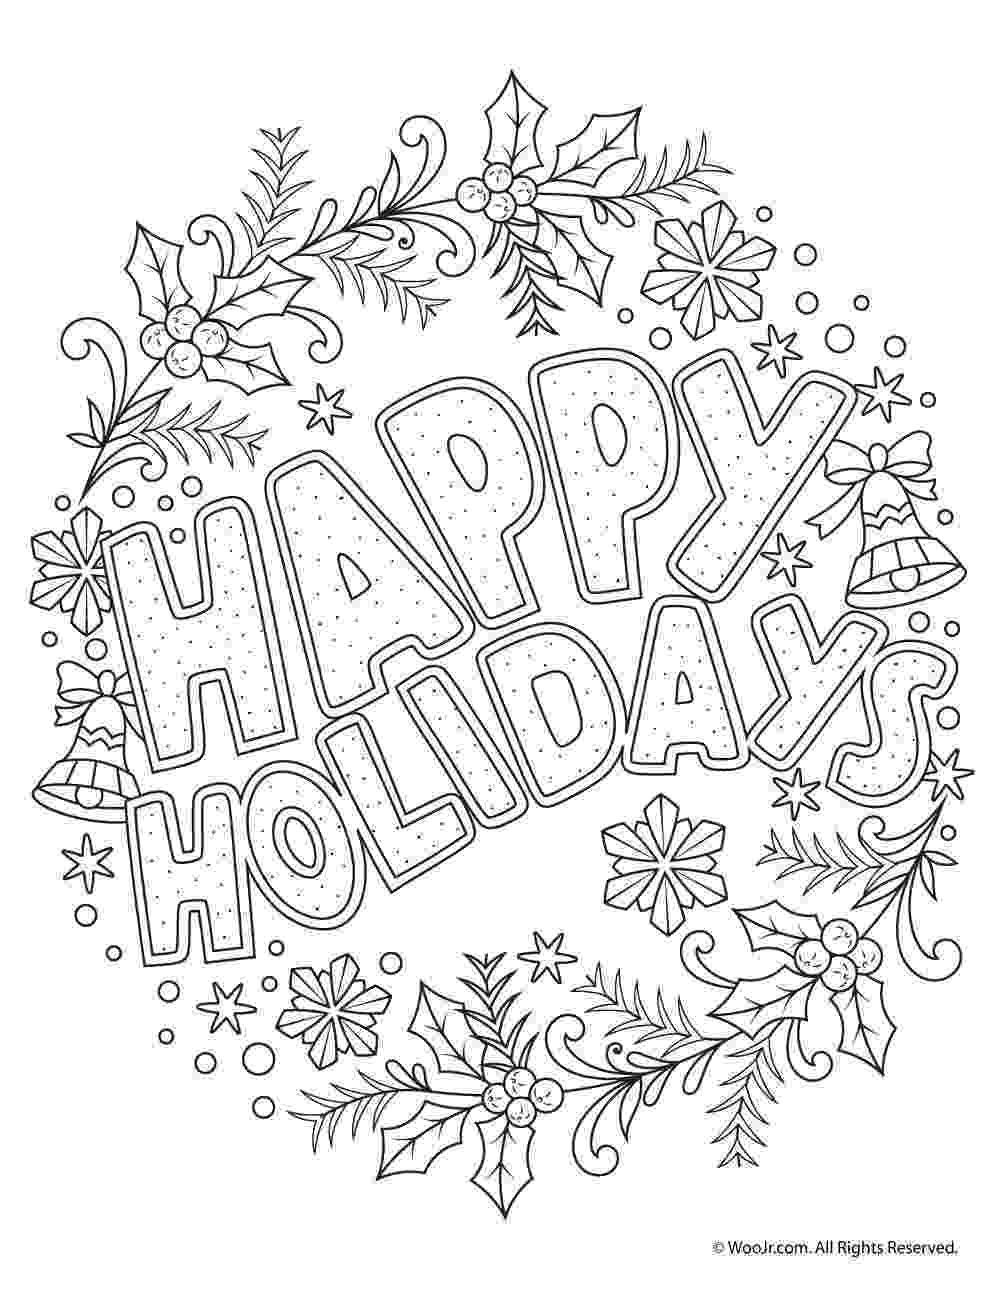 christmas colouring pages for older kids coloring book for adult and older children coloring page colouring pages for christmas older kids